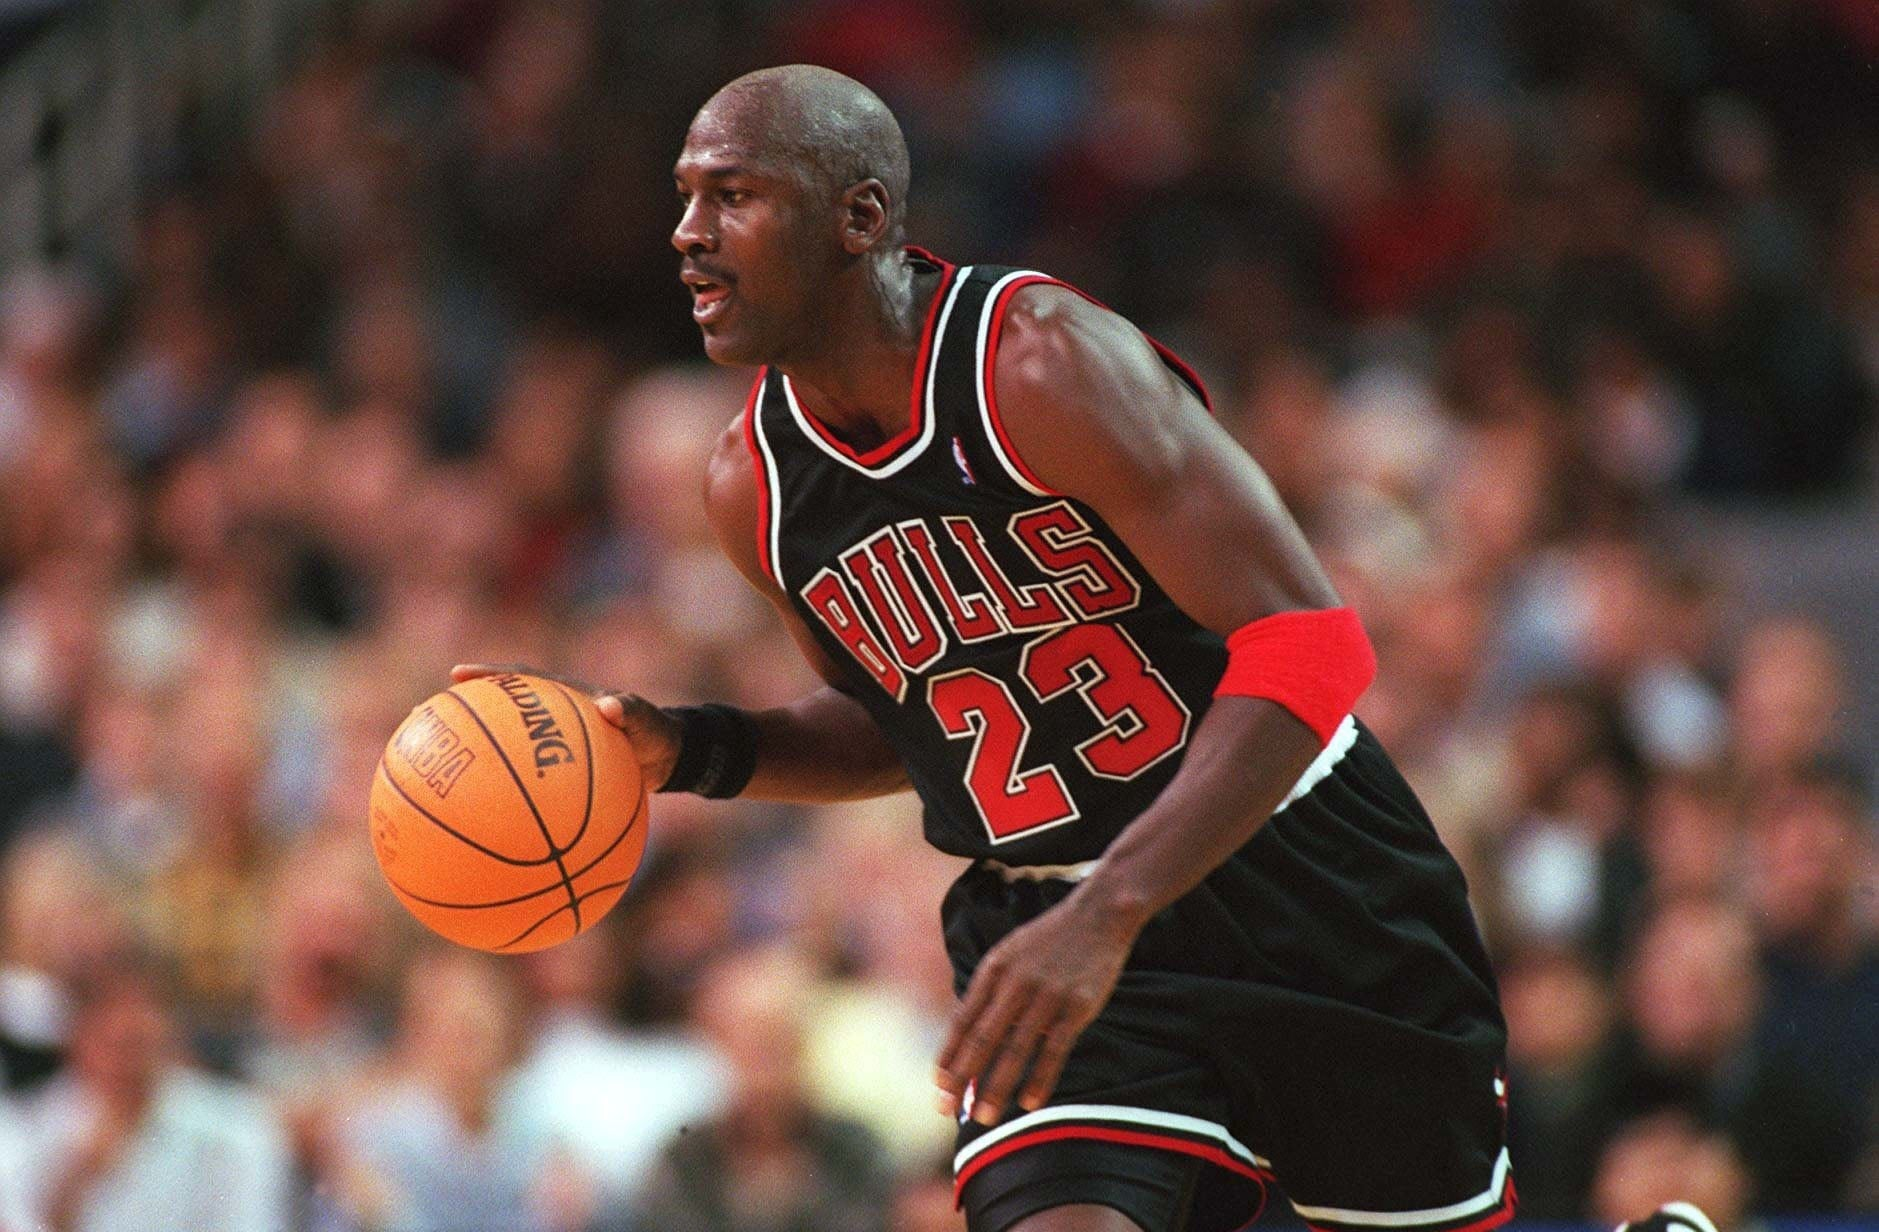 UNITED STATES - NOVEMBER 07:  NBA 97/98 CHICAGO BULLS; Michael JORDAN/CHICAGO BULLS  (Photo by Alexander Hassenstein/Bongarts/Getty Images)